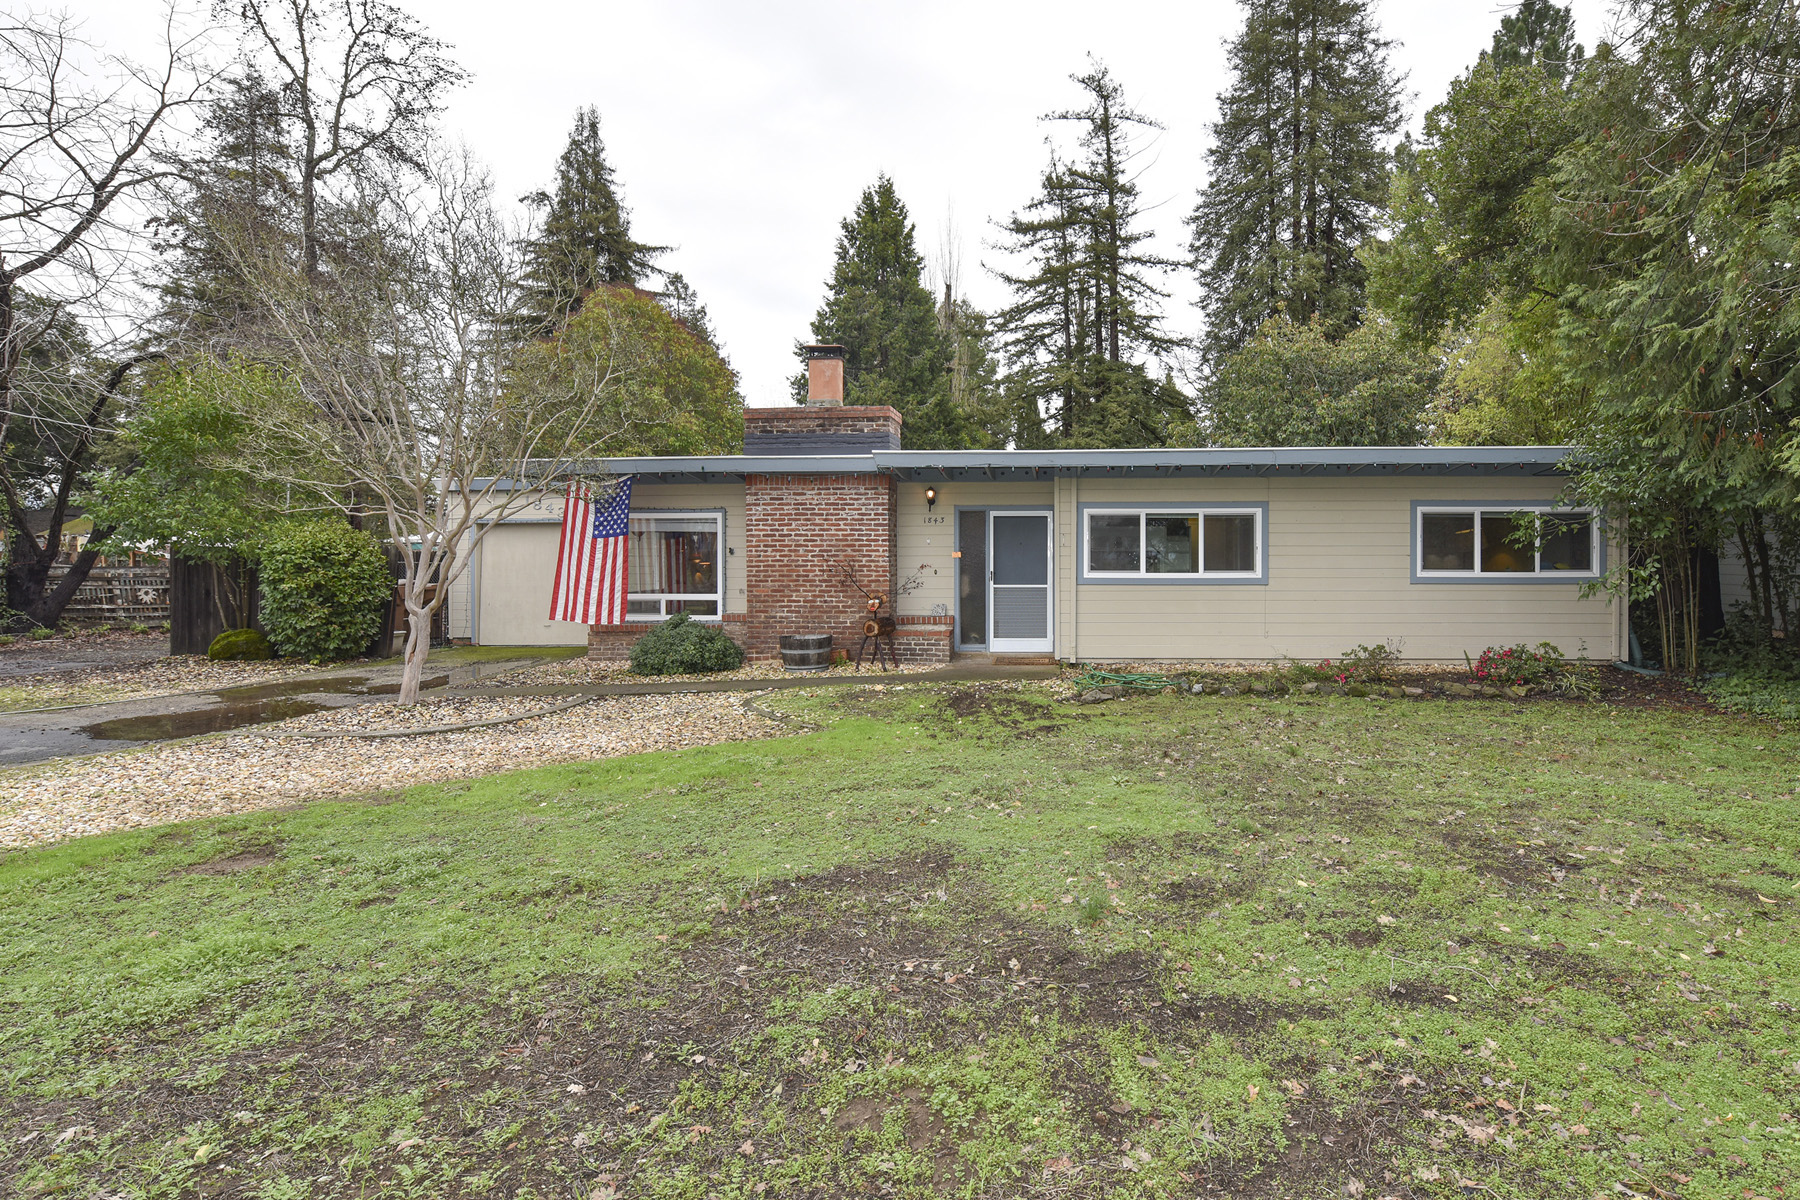 Property For Sale at 1843 Salvador Ave, Napa, CA 94558